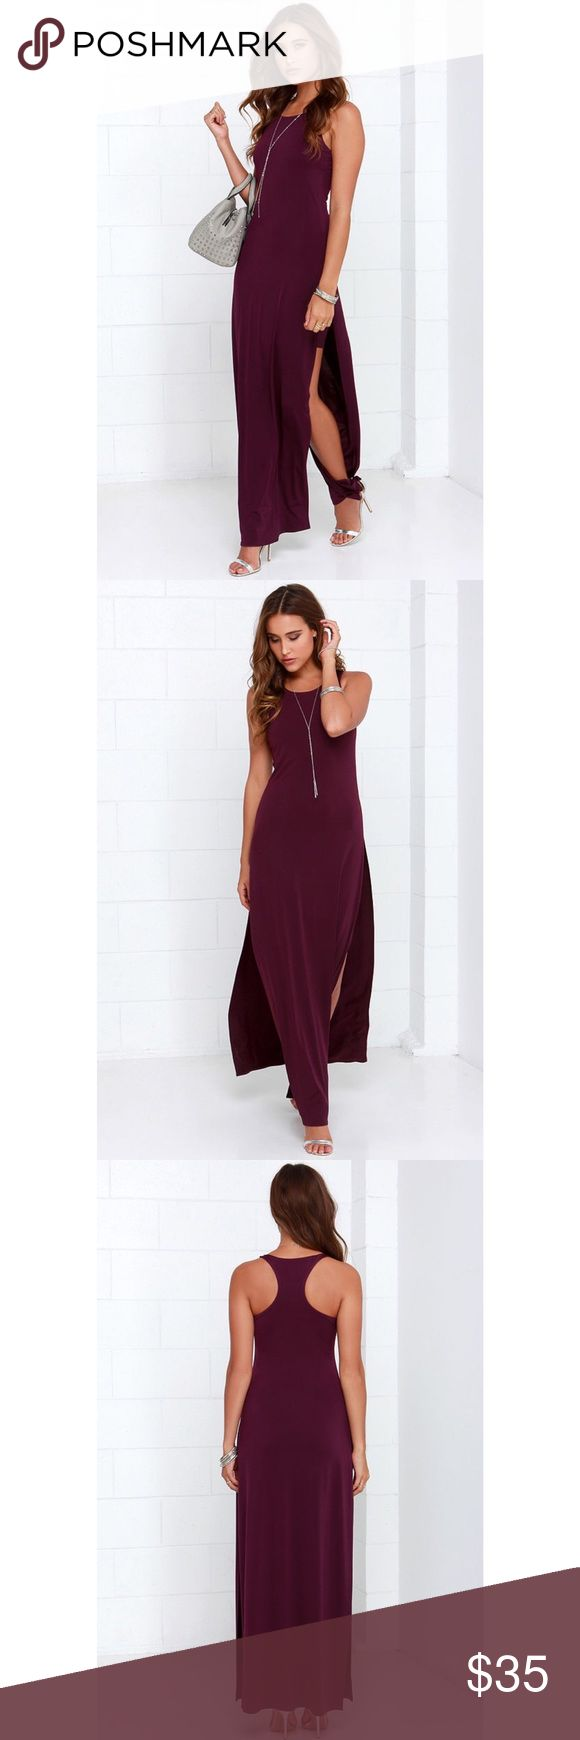 Lulus purple racerback maxi dress Lulus purple racerback maxi dress. Features racerback, twin side slit with mini dress inside. Very flattering and accents curves. True to size. Never worn. In great condition. Lulu's Dresses